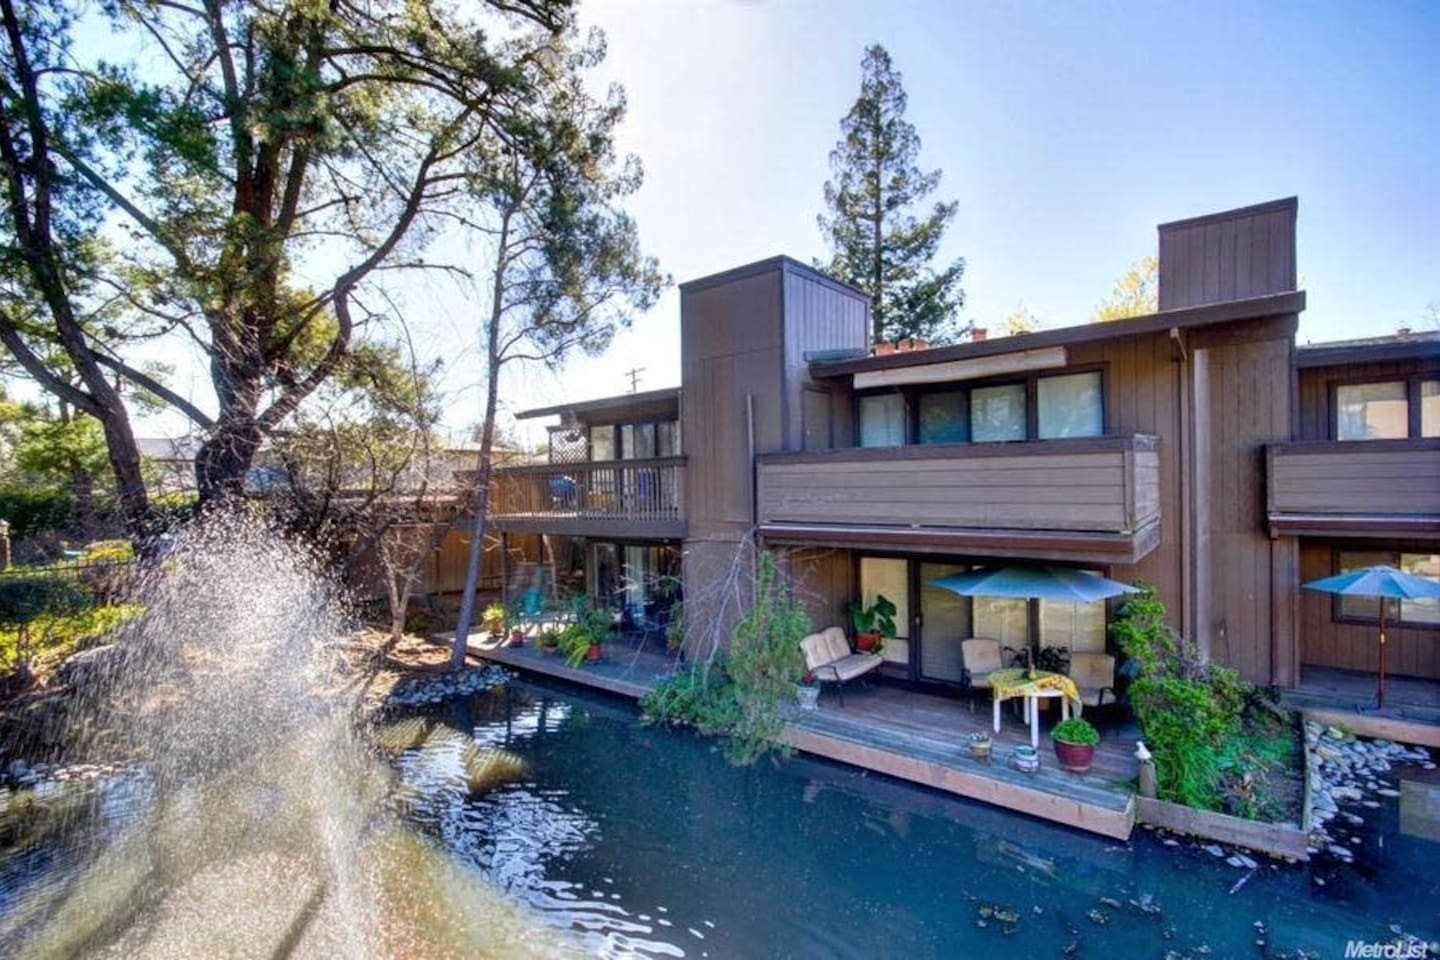 Spacious beautiful Condo facing water feature with Koi and ducks.